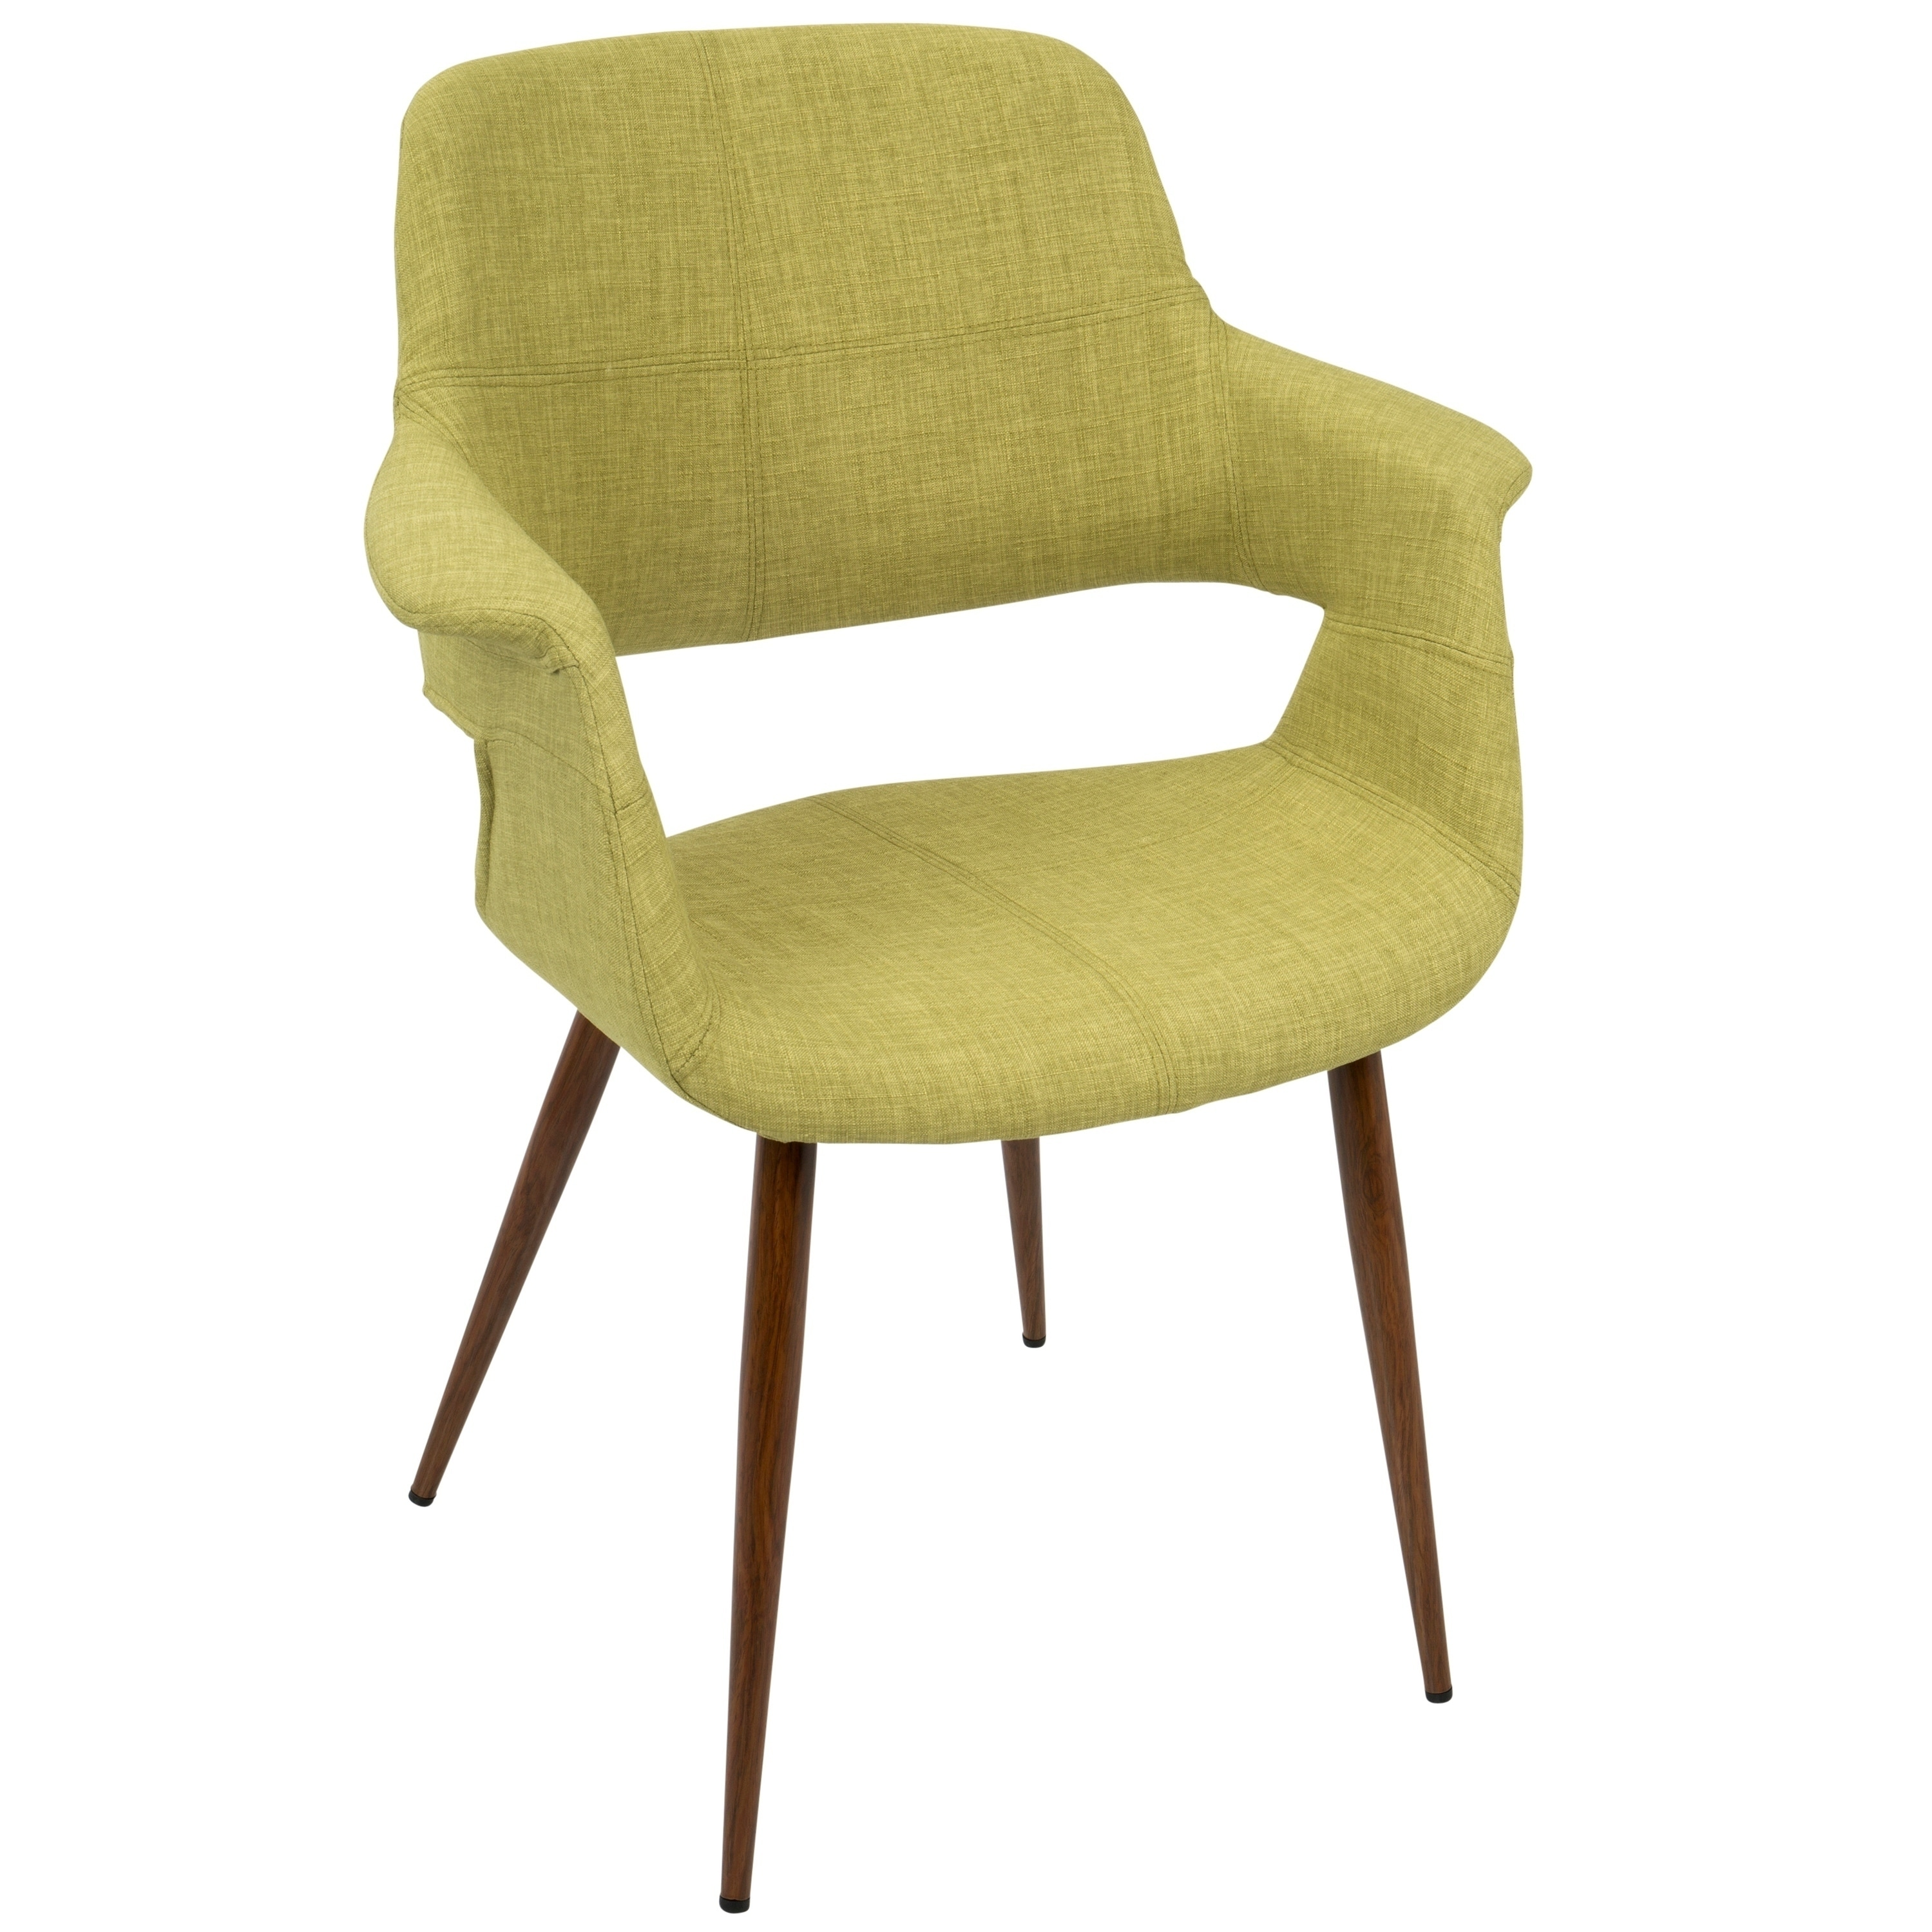 Mid Century Modern Accent Chair Carson Carrington Fauske Mid Century Modern Accent Chair N A